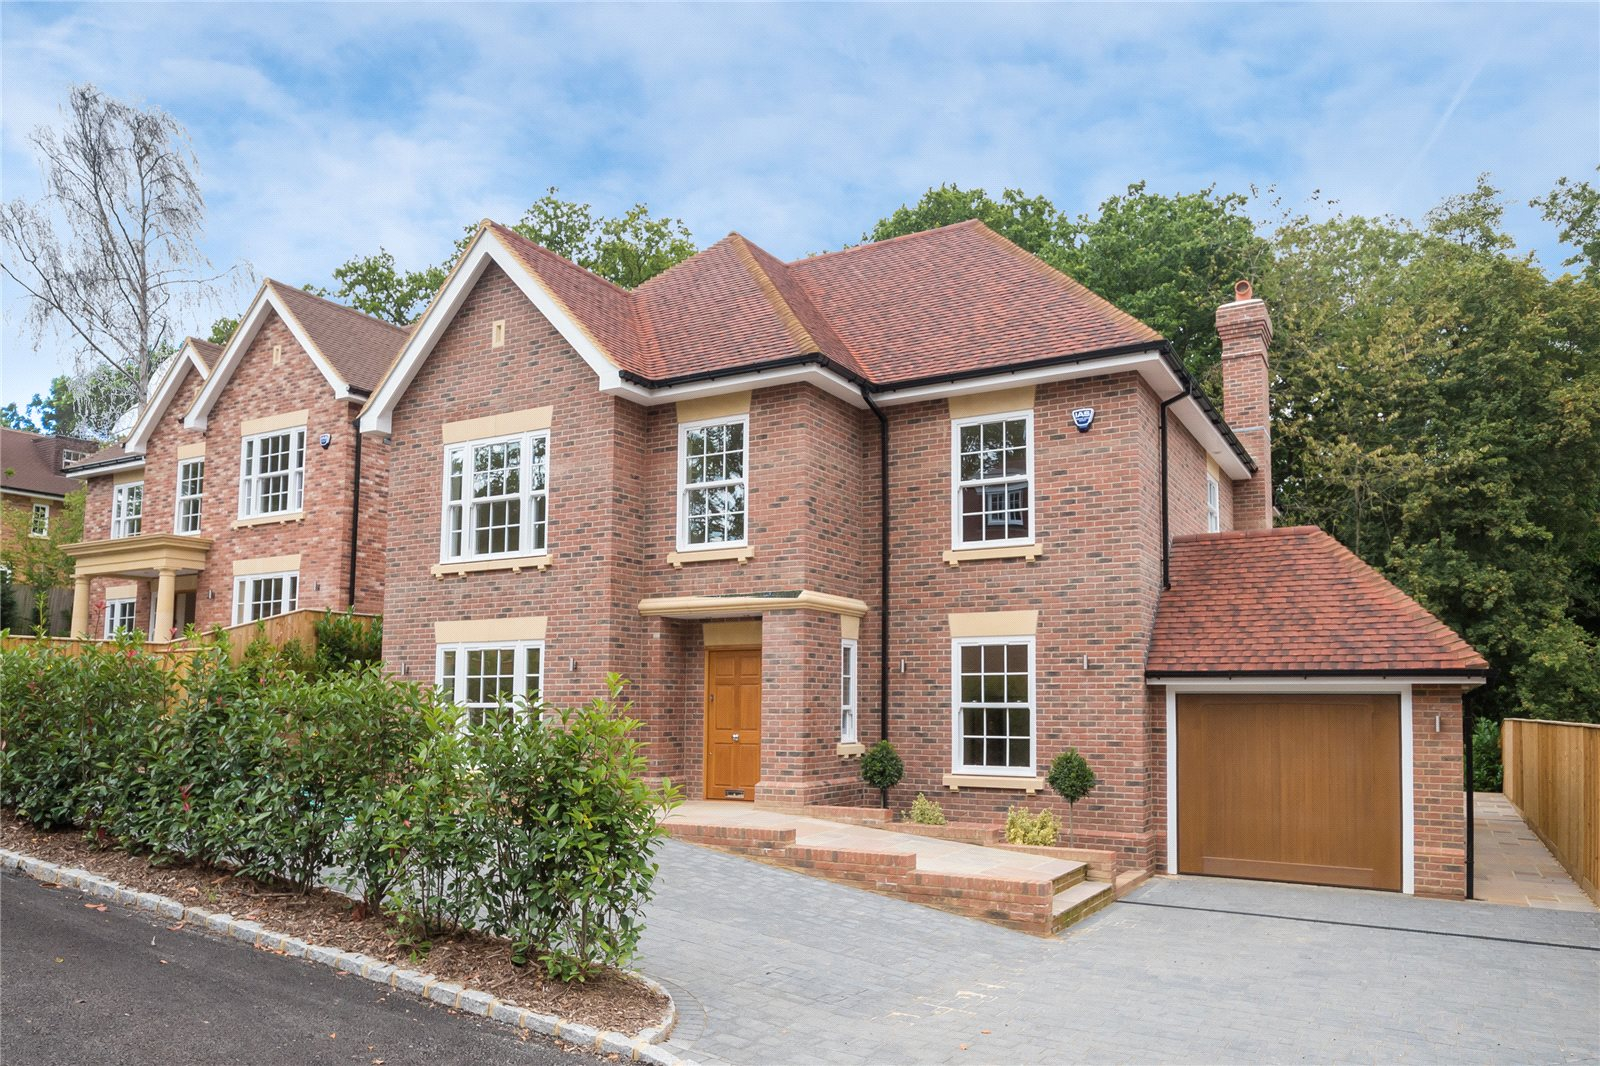 Single Family Home for Sale at Strawberry Hill, Gerrards Cross, Buckinghamshire, SL9 Gerrards Cross, England